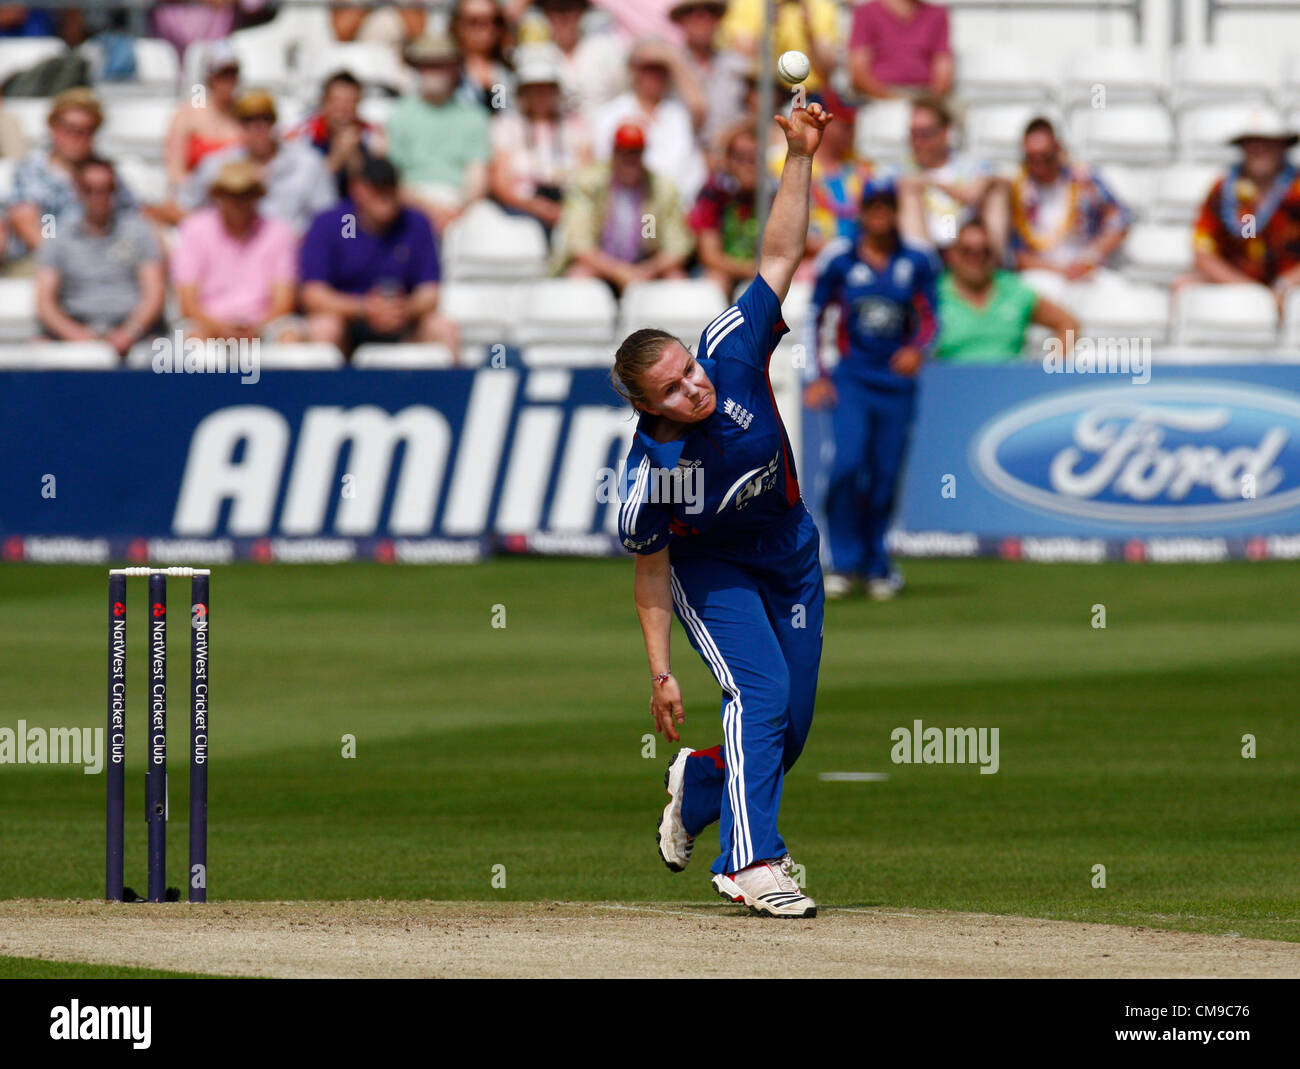 28.06.12 Chelmsford, ENGLAND:  Holly Colvin of England during NatWest Women's International Twenty20 Series - Stock Image